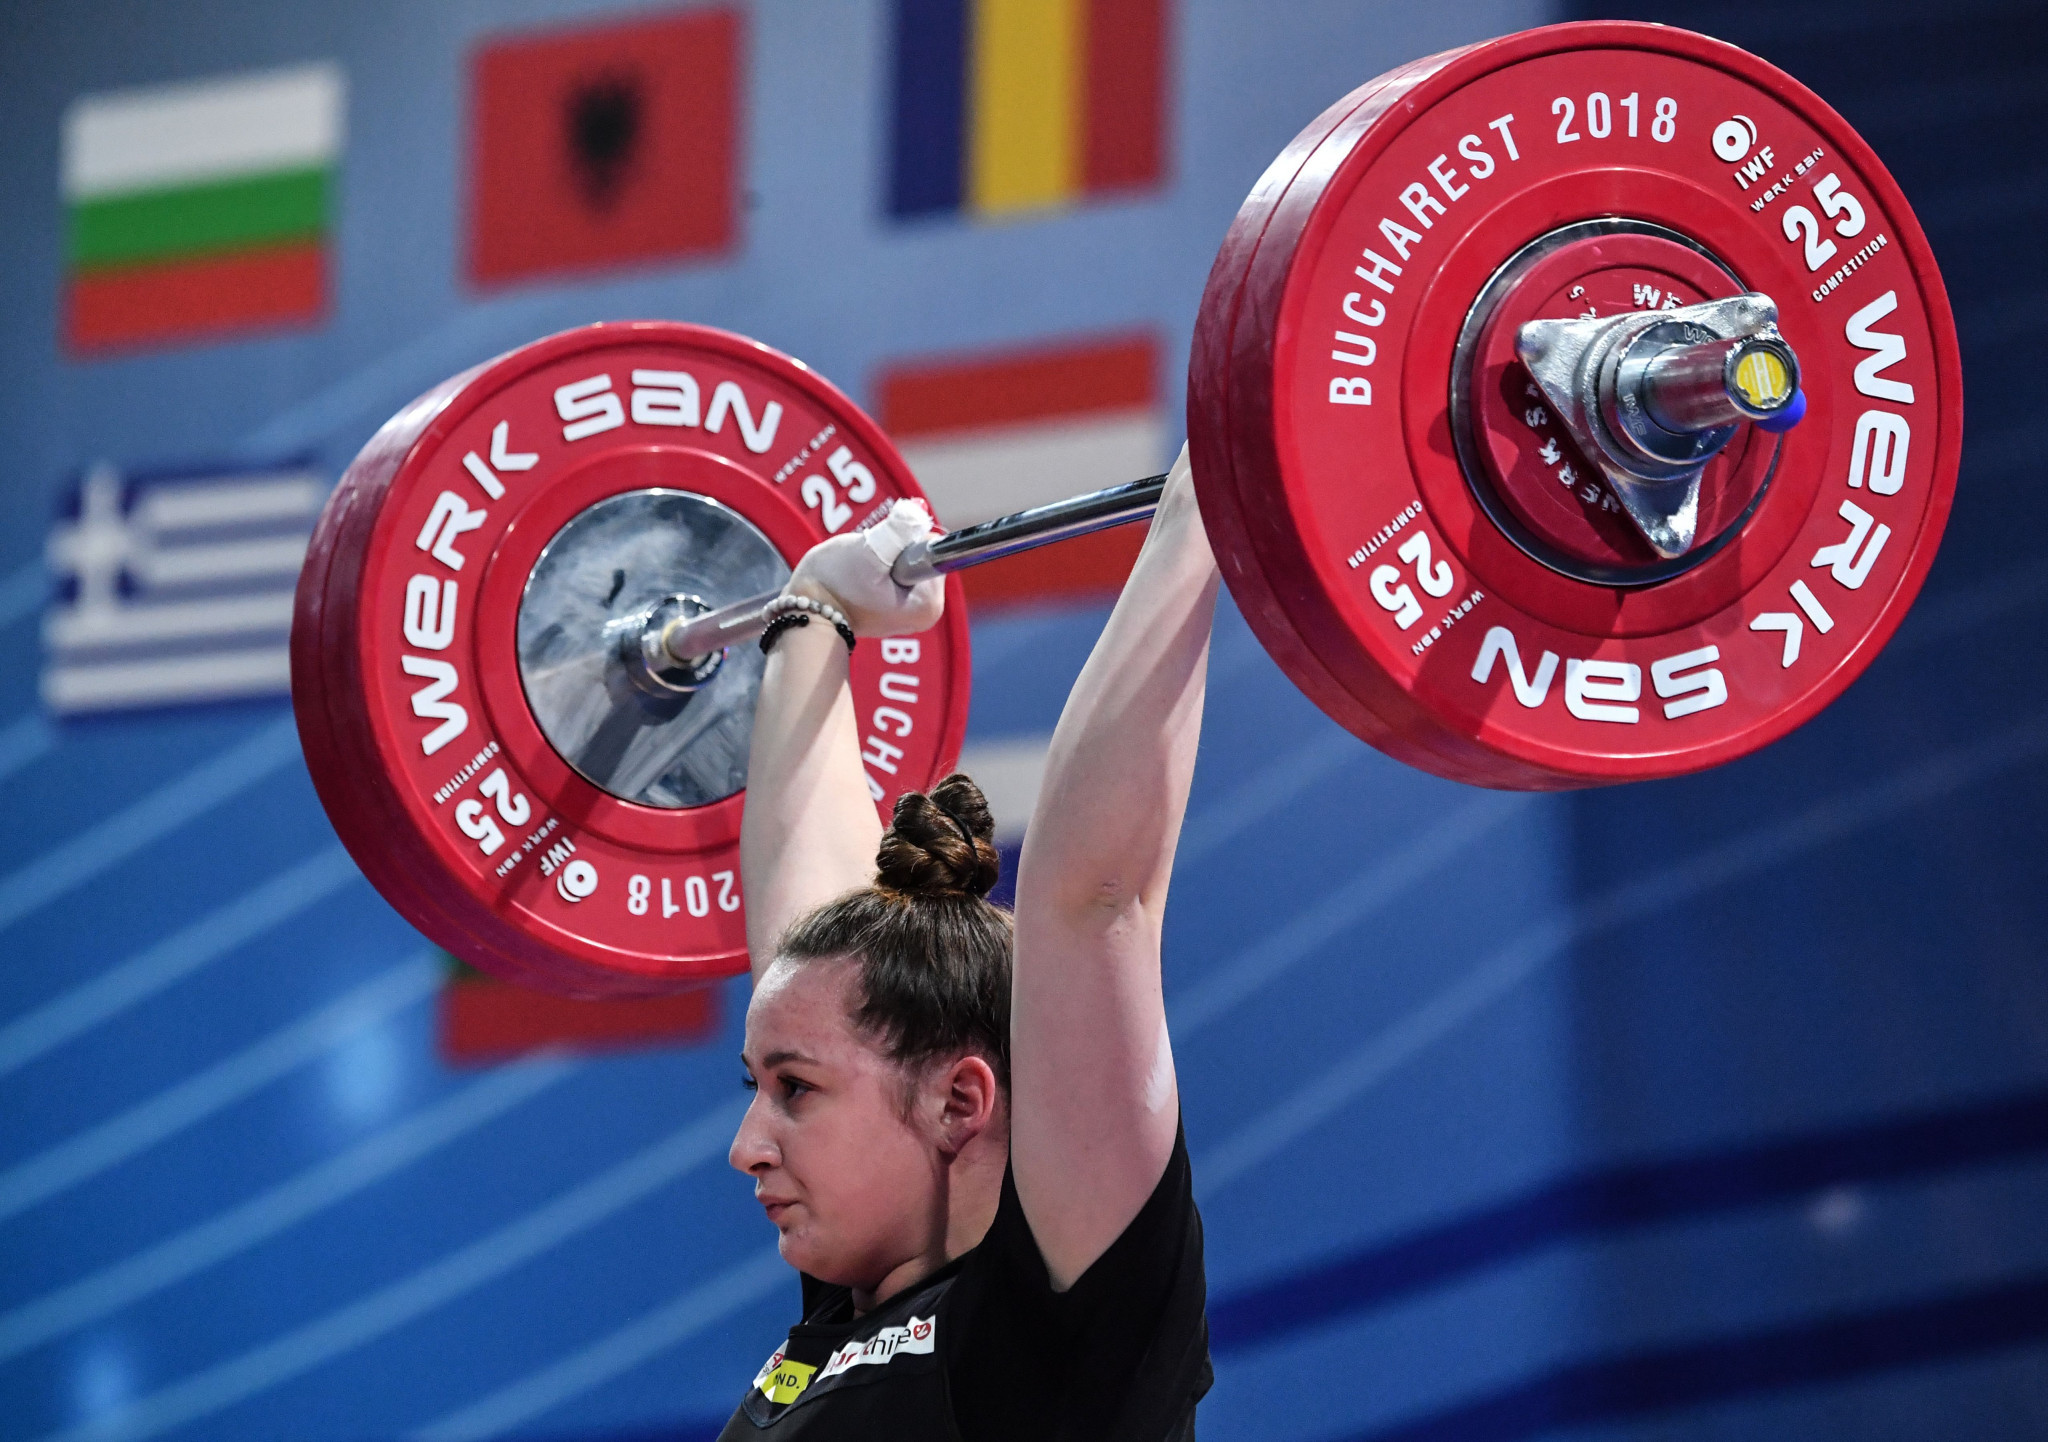 Five lucky weightlifters get huge boost with places at Tokyo 2020